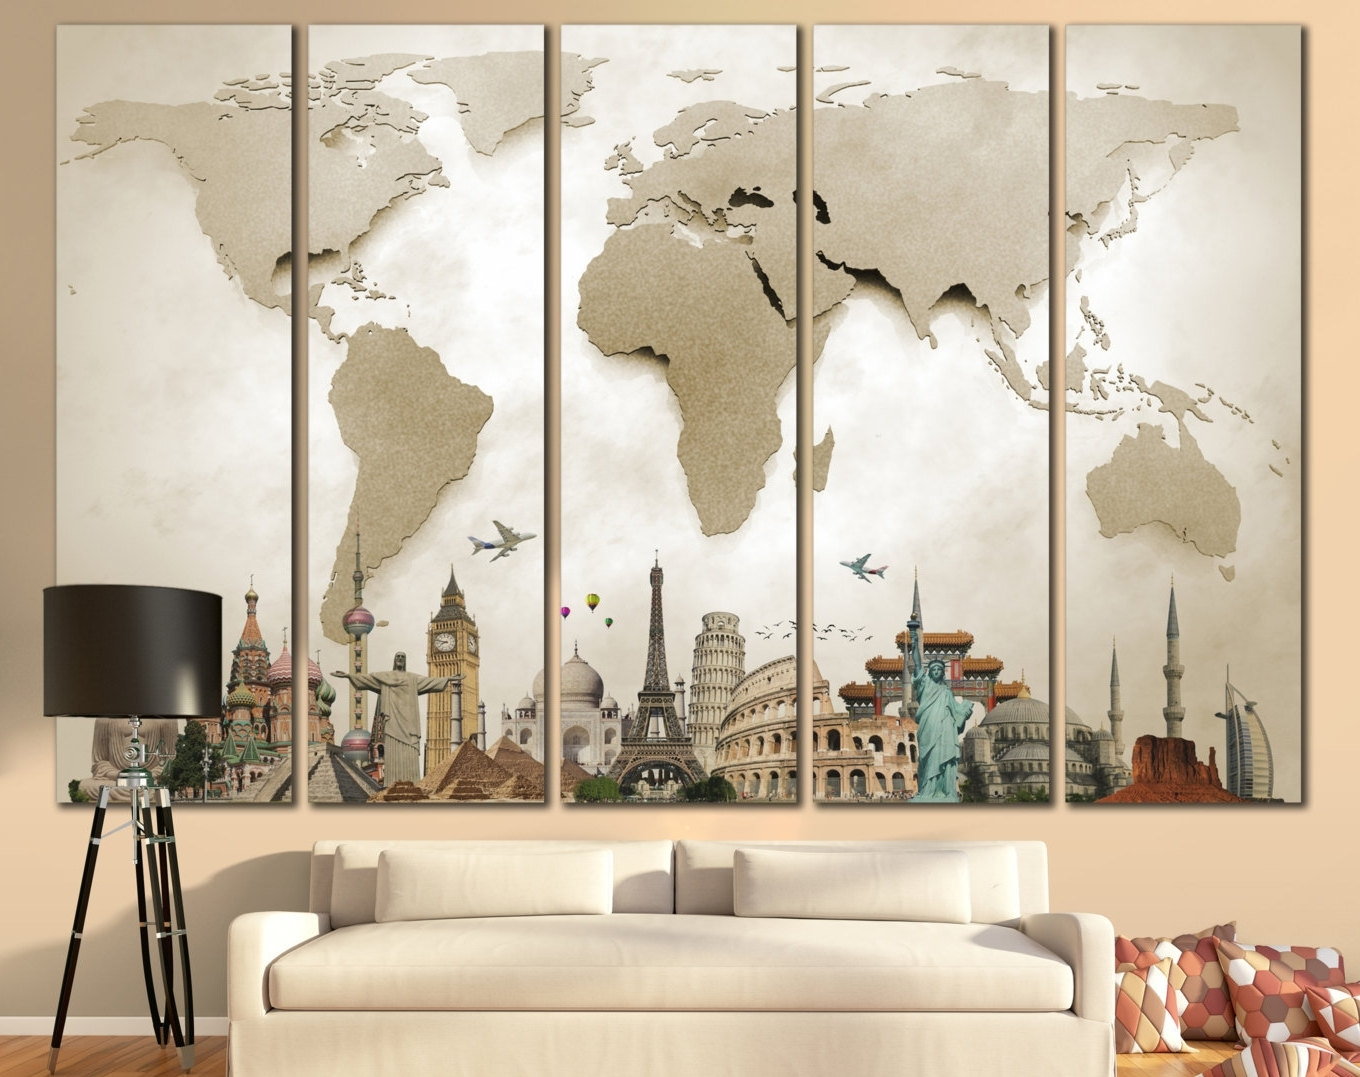 Large Wall Decor Ideas Maps : Amazing Large Wall Decor Ideas Options with regard to 2018 Maps Wall Art